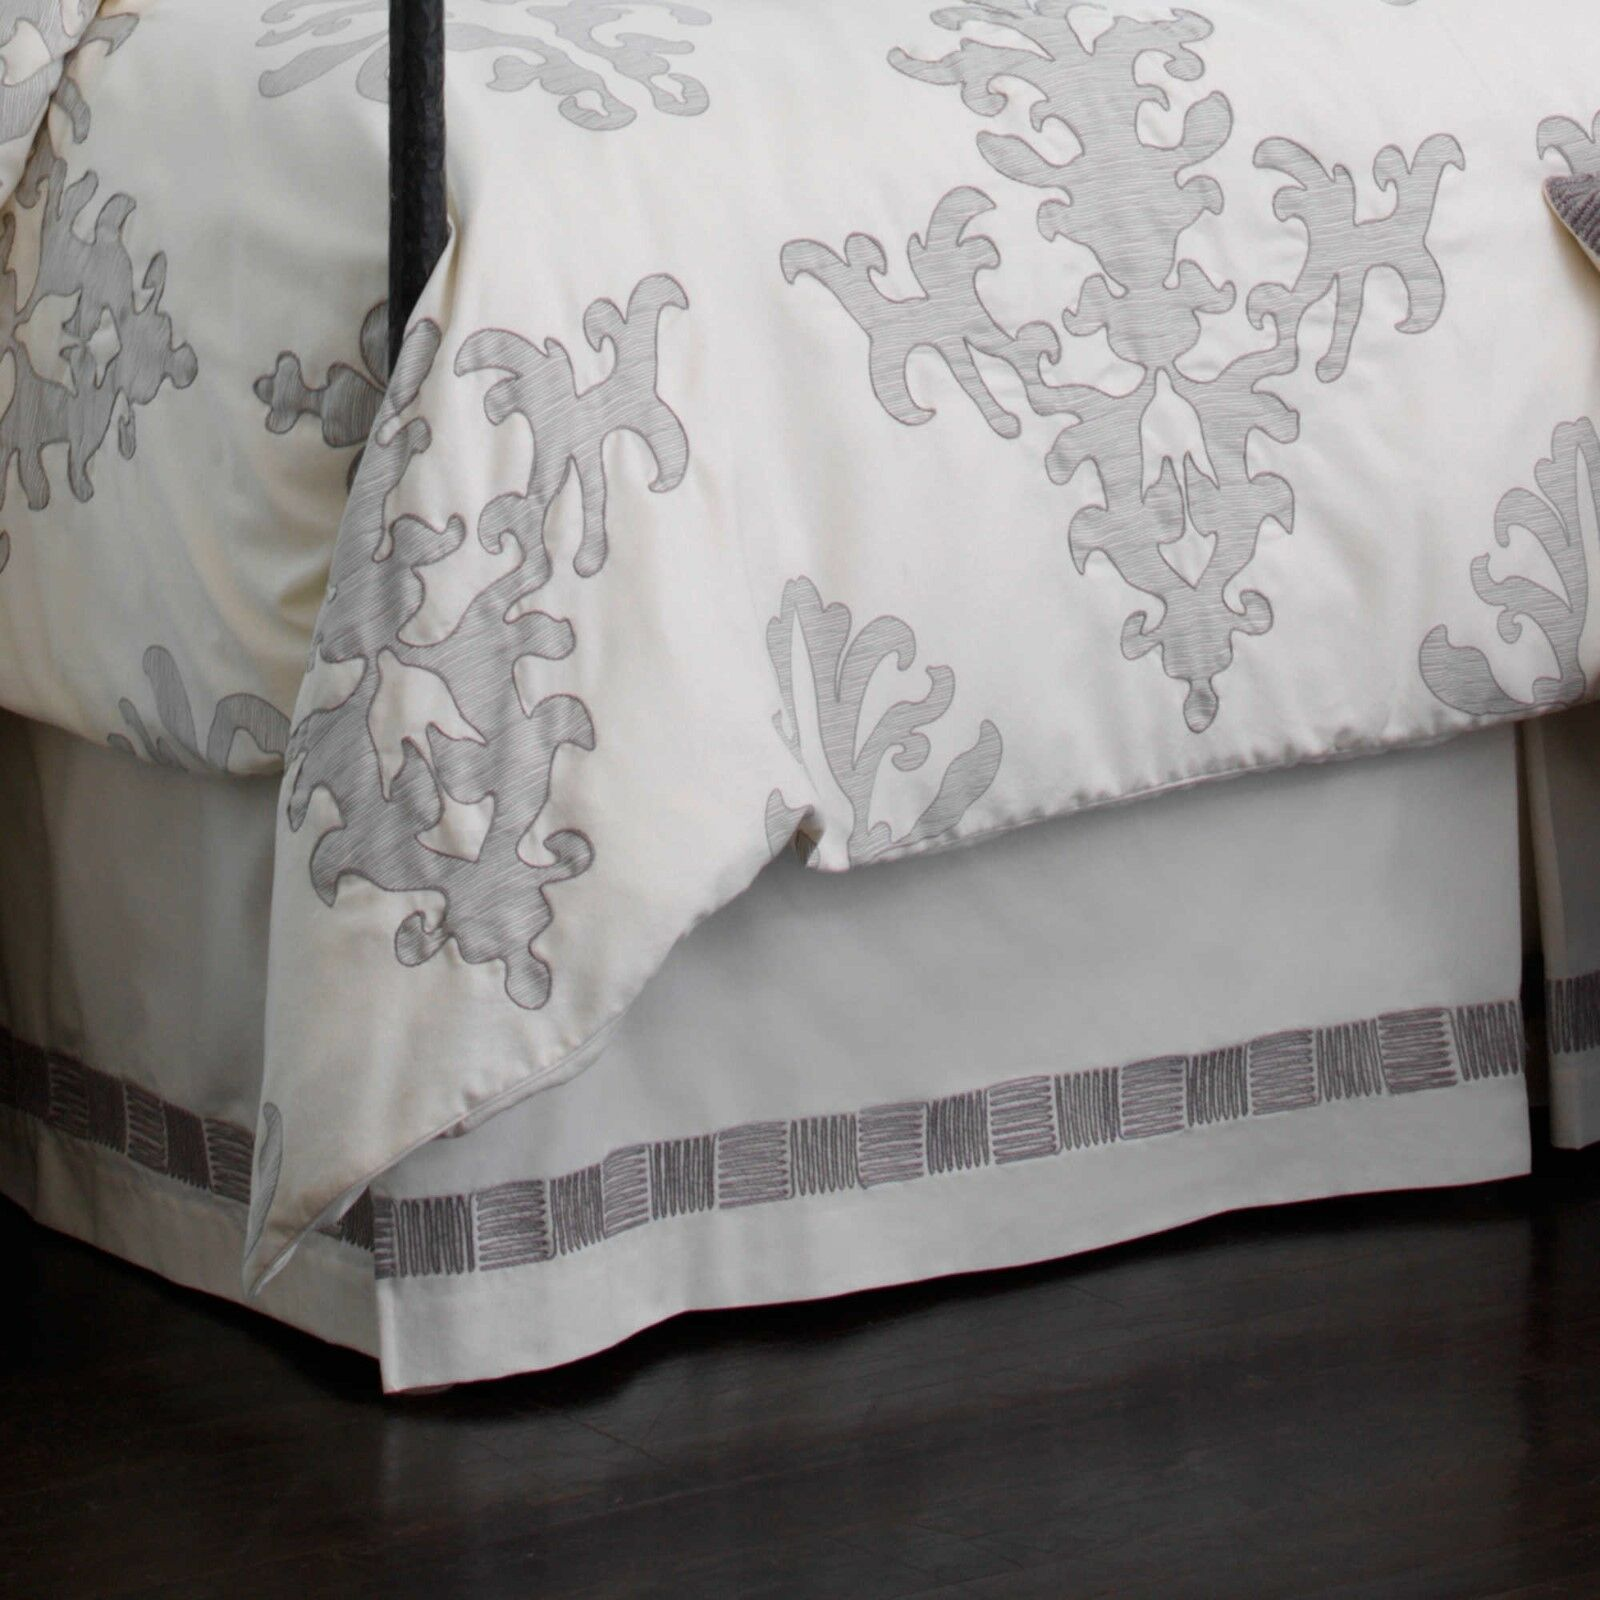 UPSTAIRS DRANSFIELD ROSS ANTIGUA 1 QUEEN SIZE BED SKIRT DUST RUFFLE IVORY